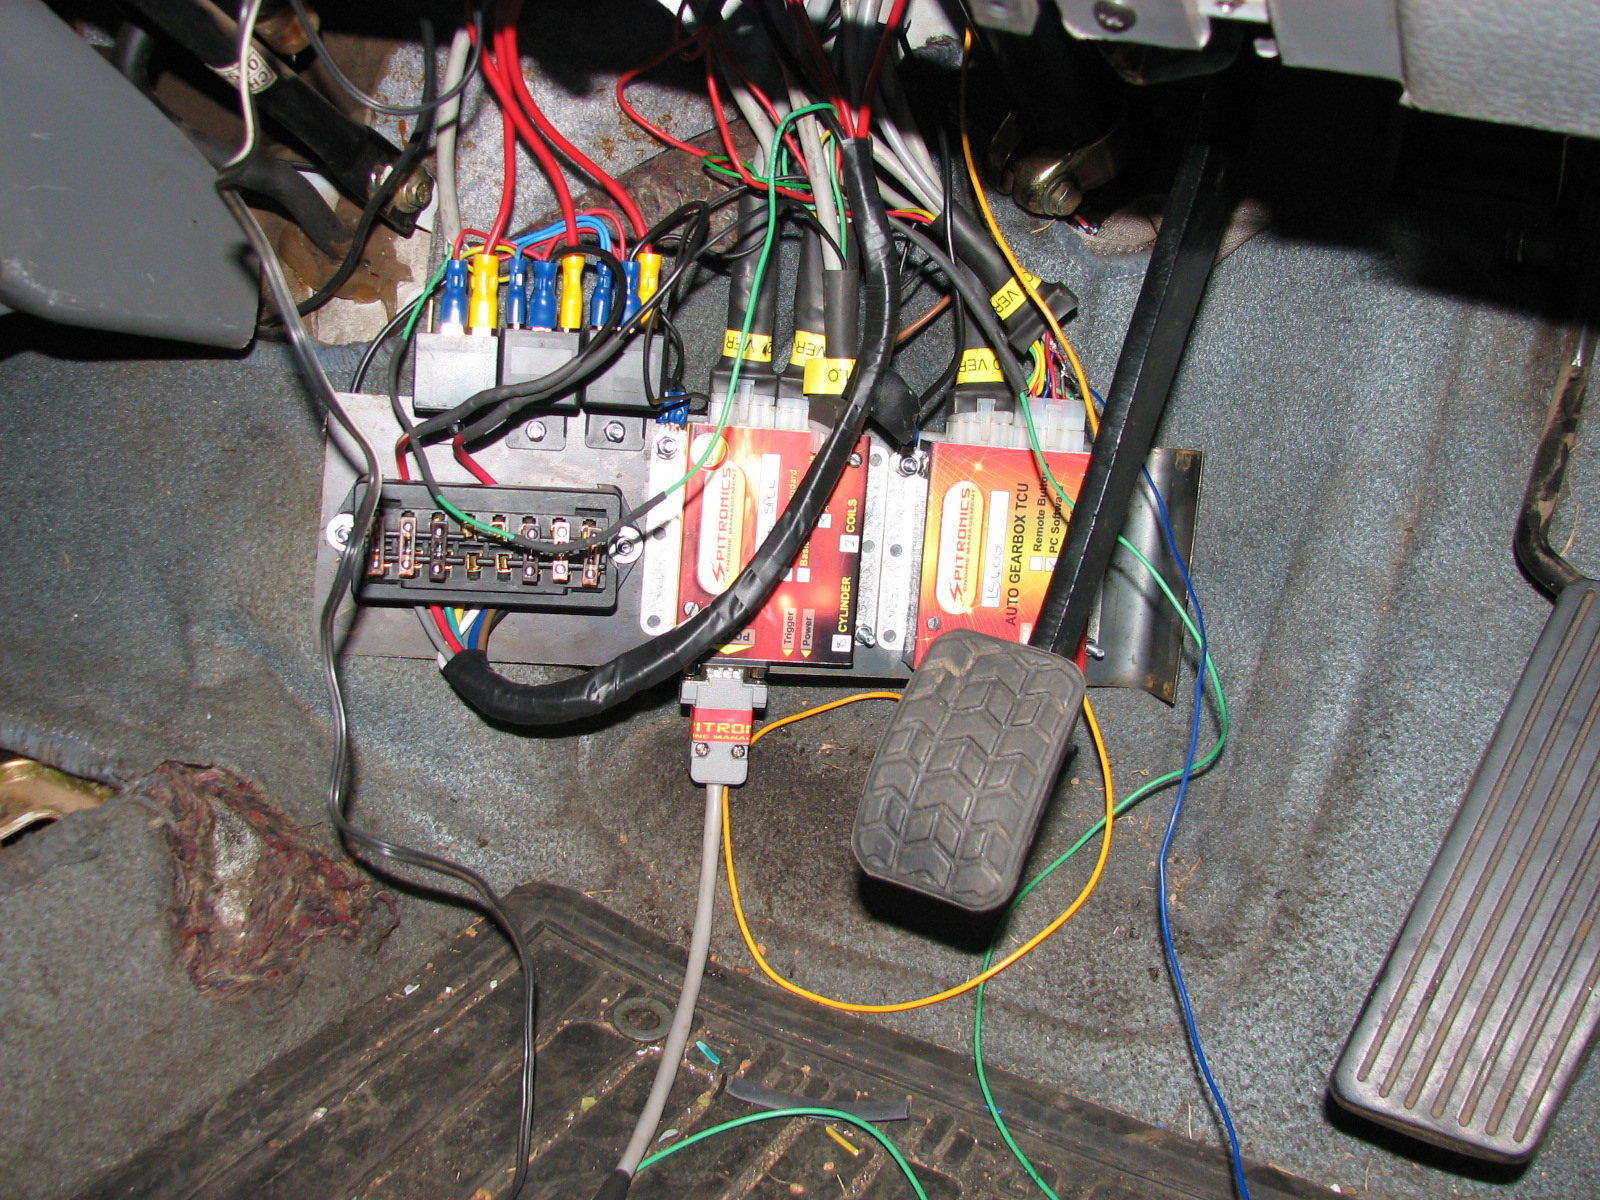 ECU & TCU wiring comming together in the vehicle